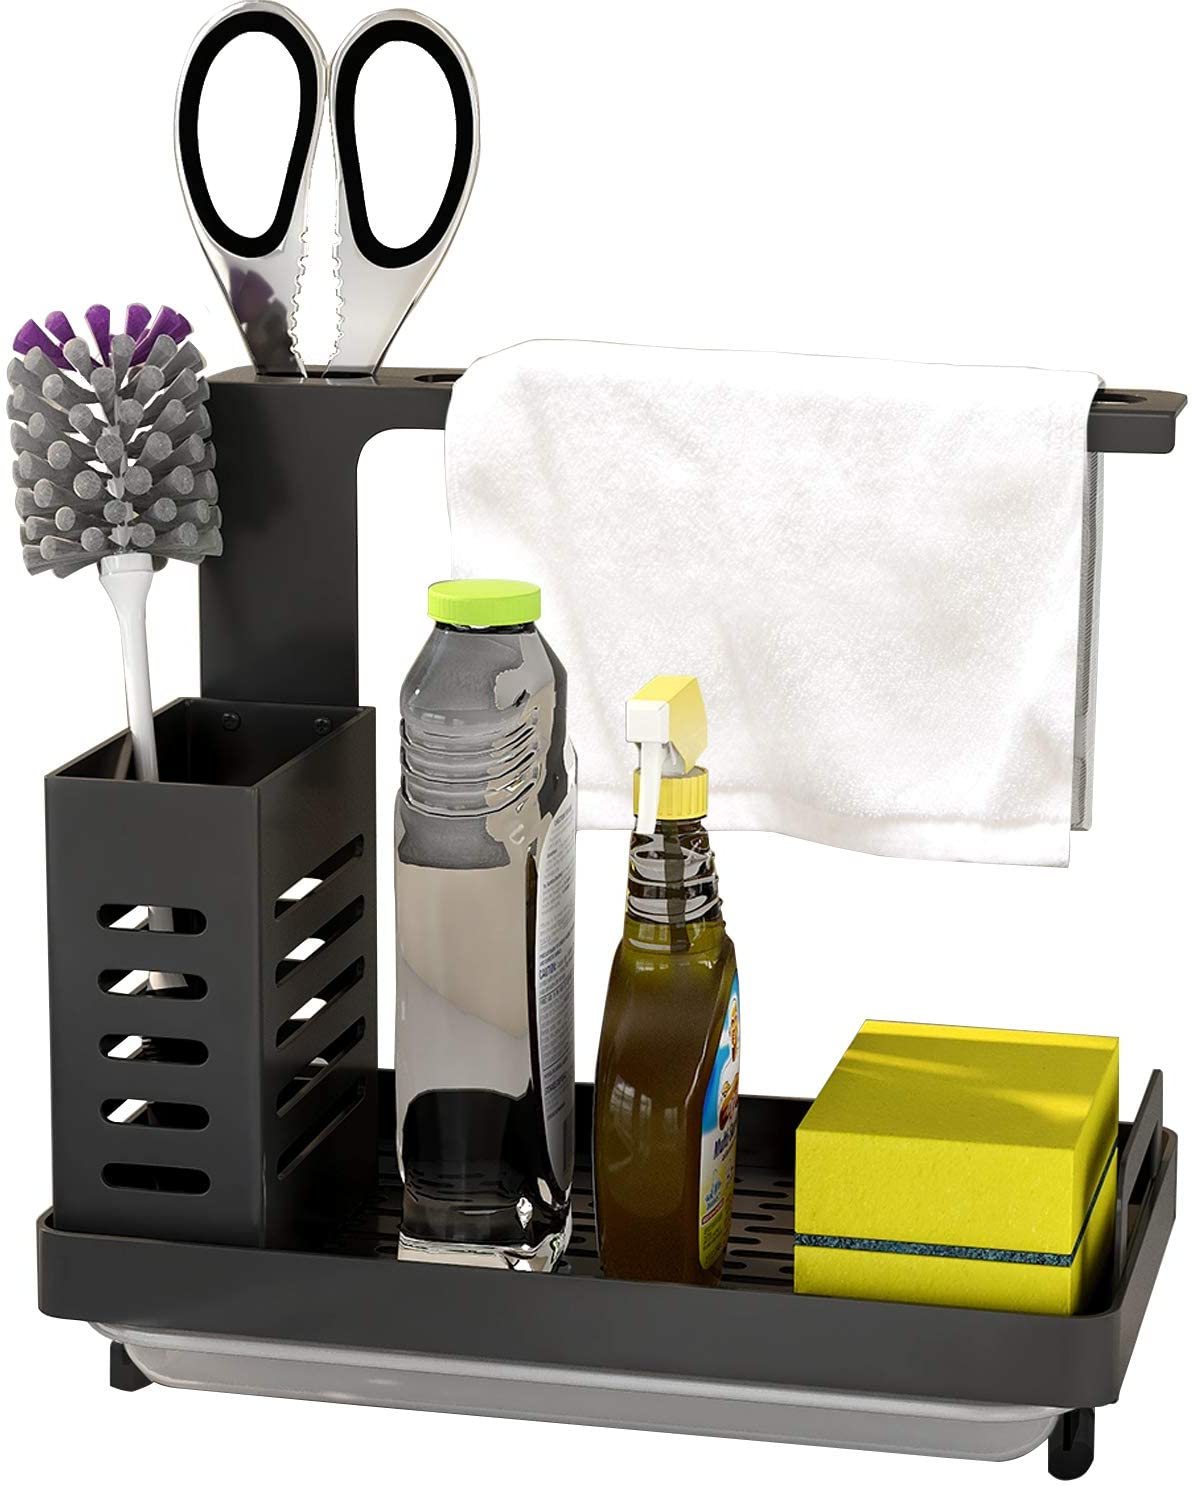 MKO Kitchen Sink Caddy Organizer